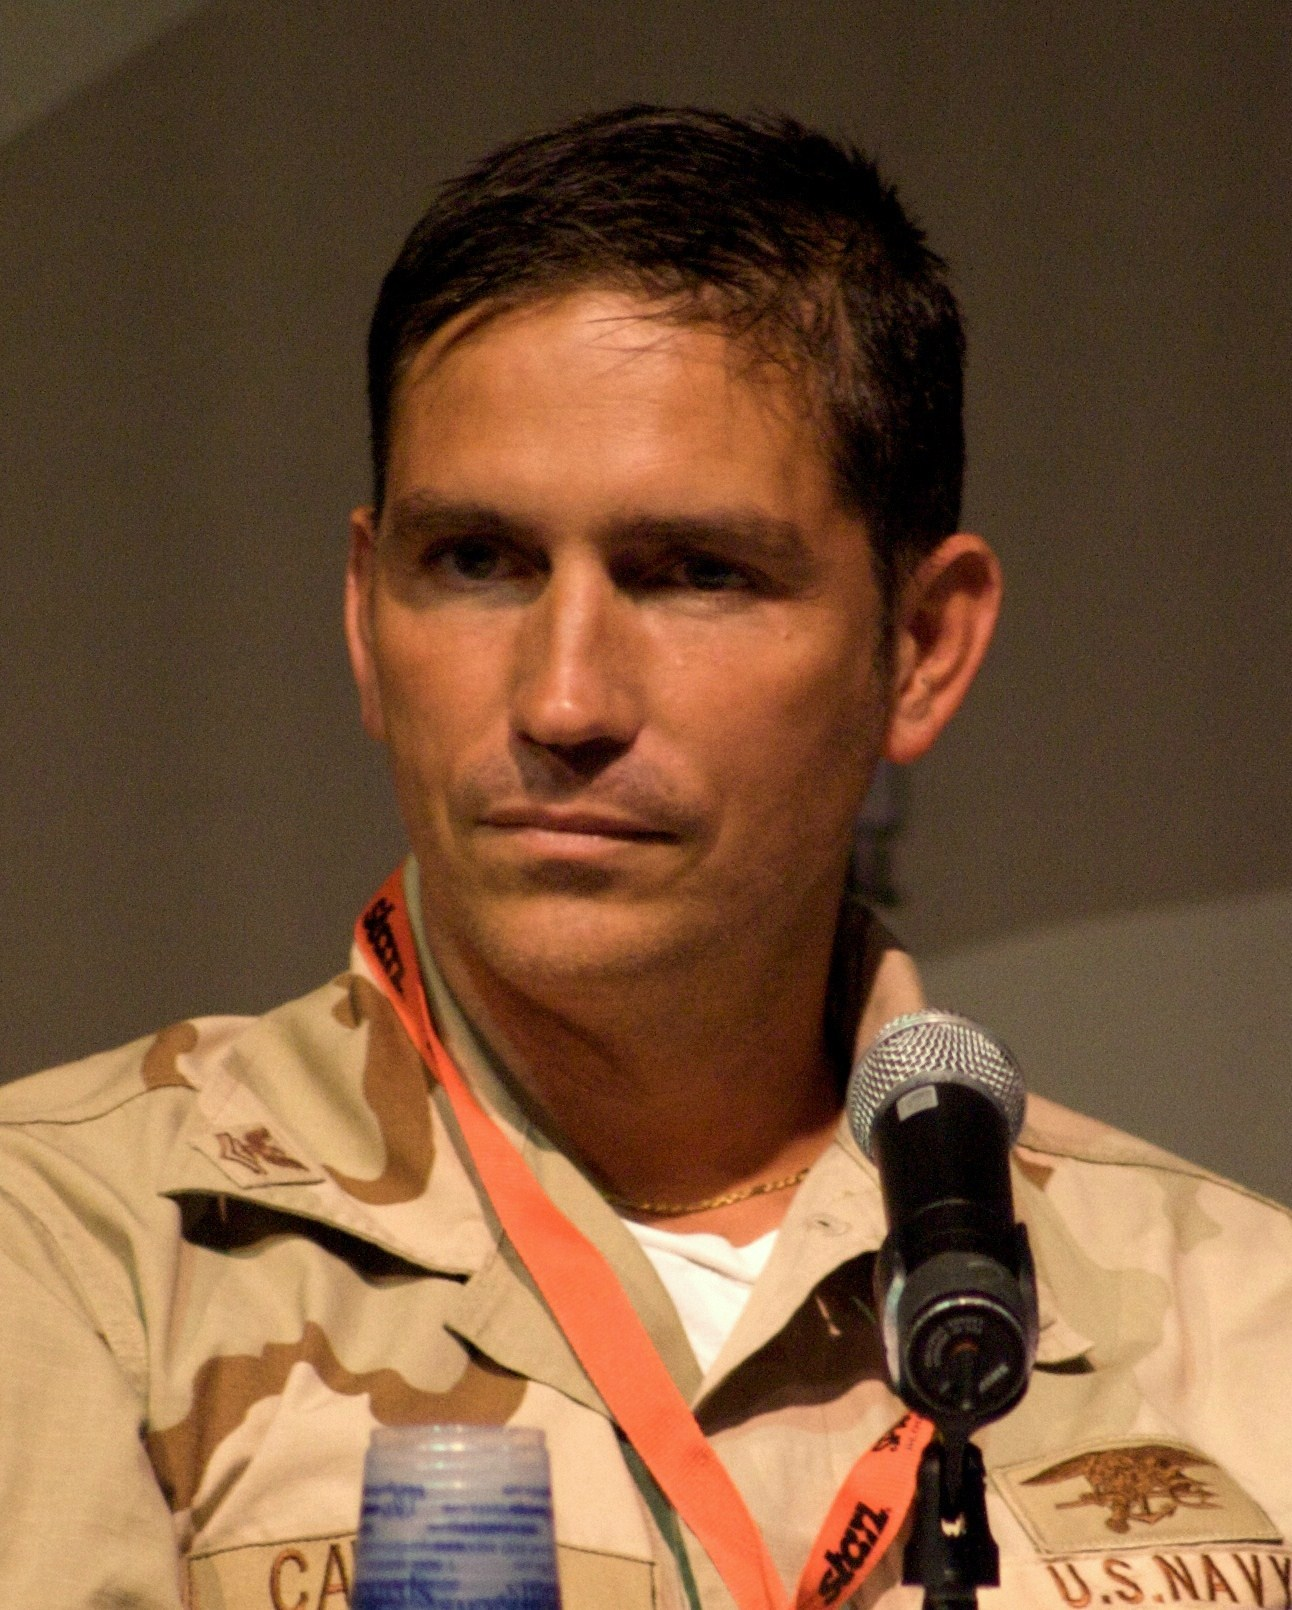 The 50-year old son of father Jim Caviezel and mother Maggie Caviezel Jim Caviezel in 2018 photo. Jim Caviezel earned a  million dollar salary - leaving the net worth at 3 million in 2018